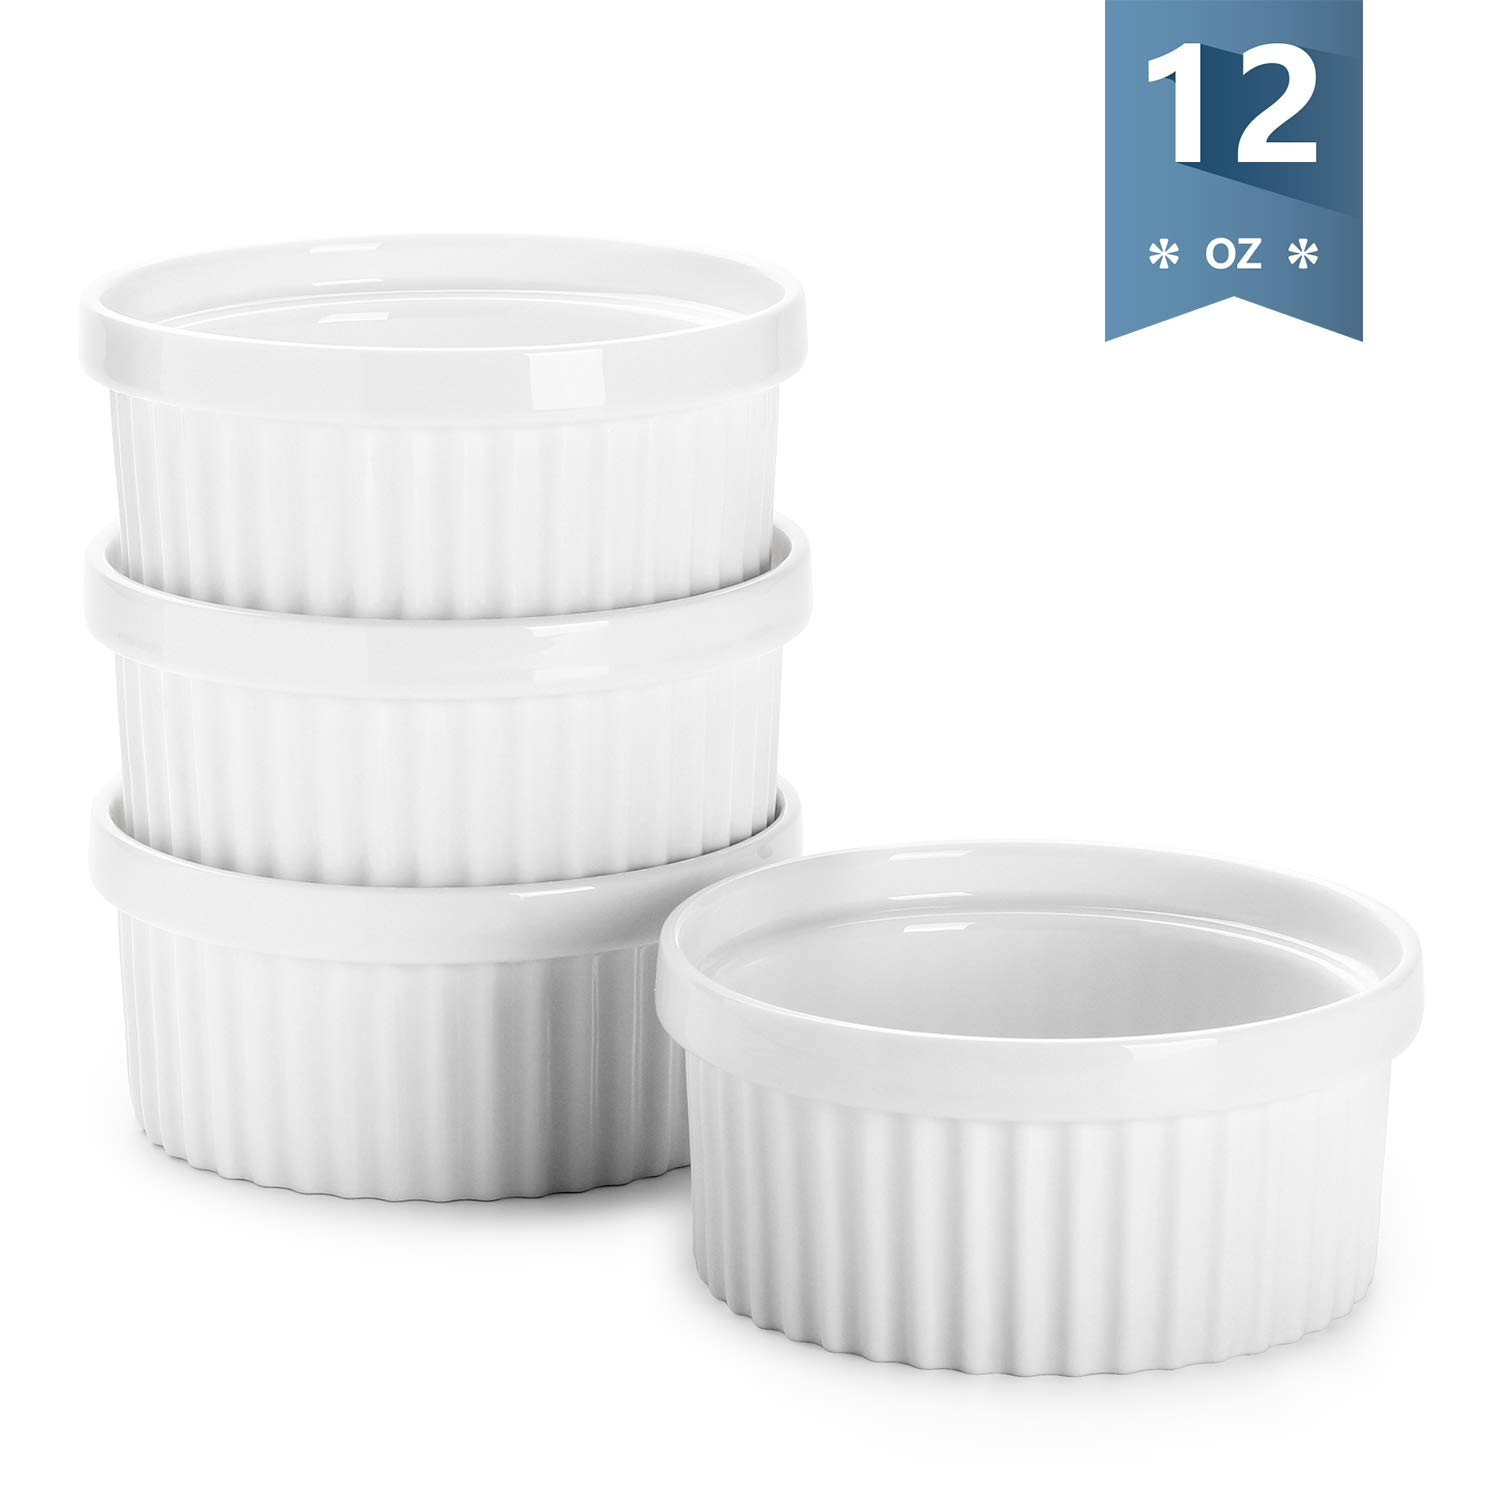 Sweese 503.101 Porcelain Ramekins for Baking - 12 Ounce Souffle Dish - Set of 4, White by Sweese